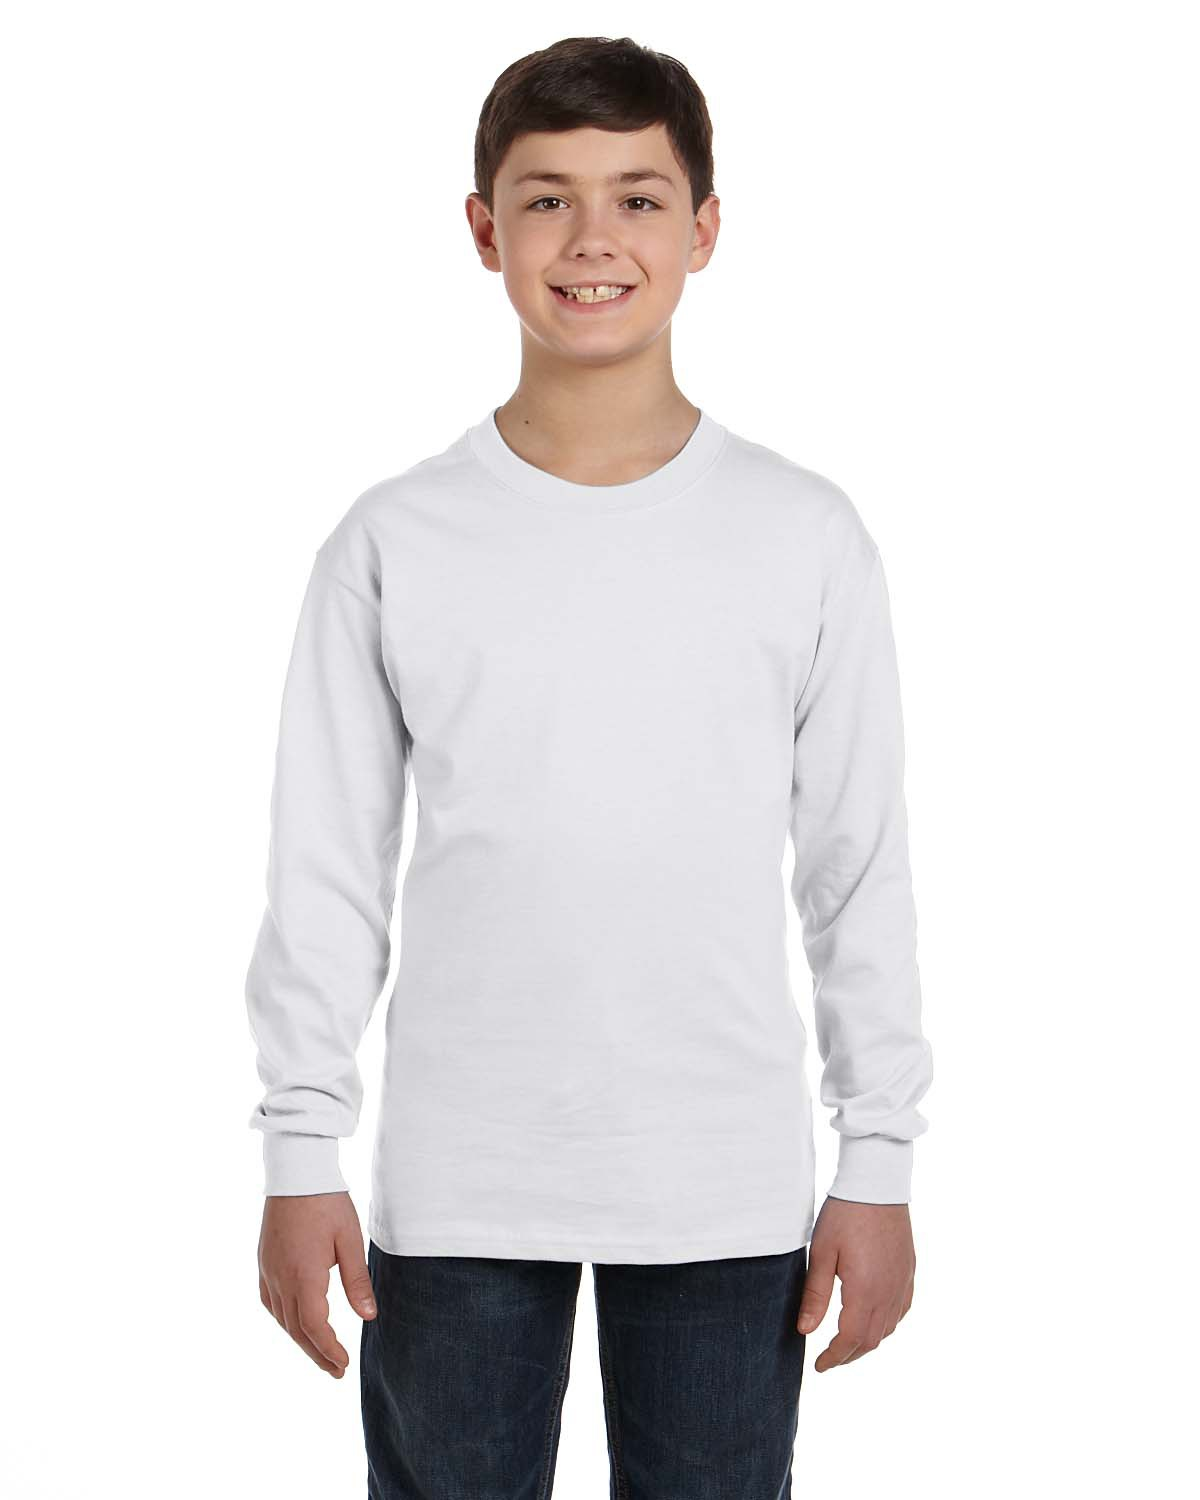 Hanes 5546 - TAGLESS Youth Long Sleeve T-Shirt